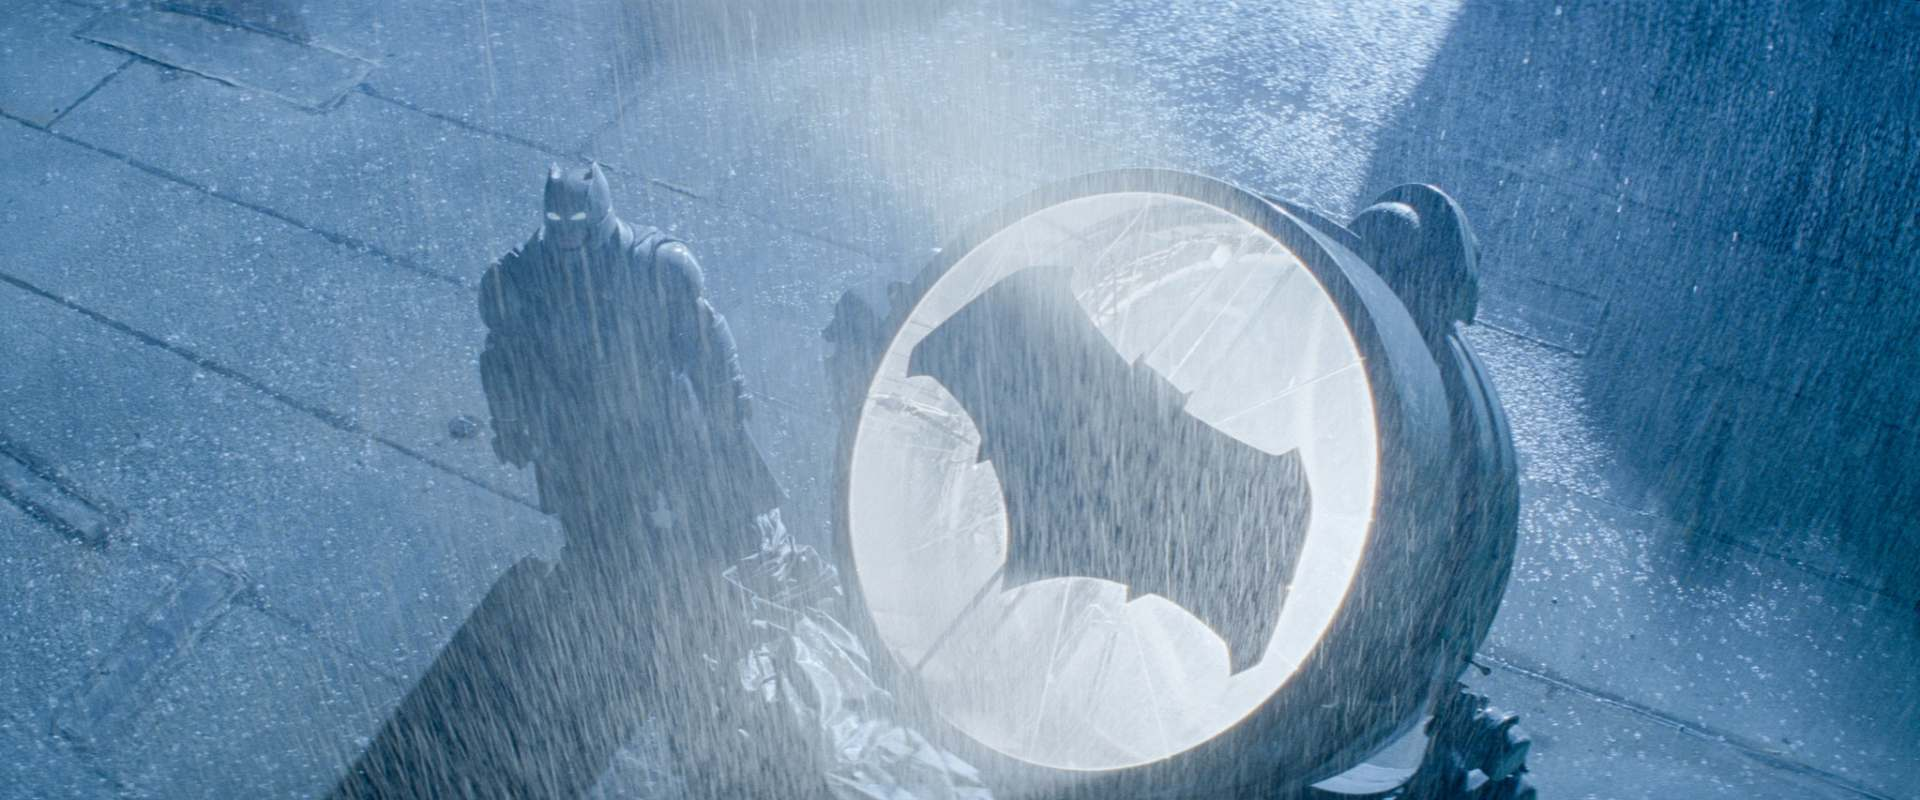 Batman v Superman: Dawn of Justice background 2